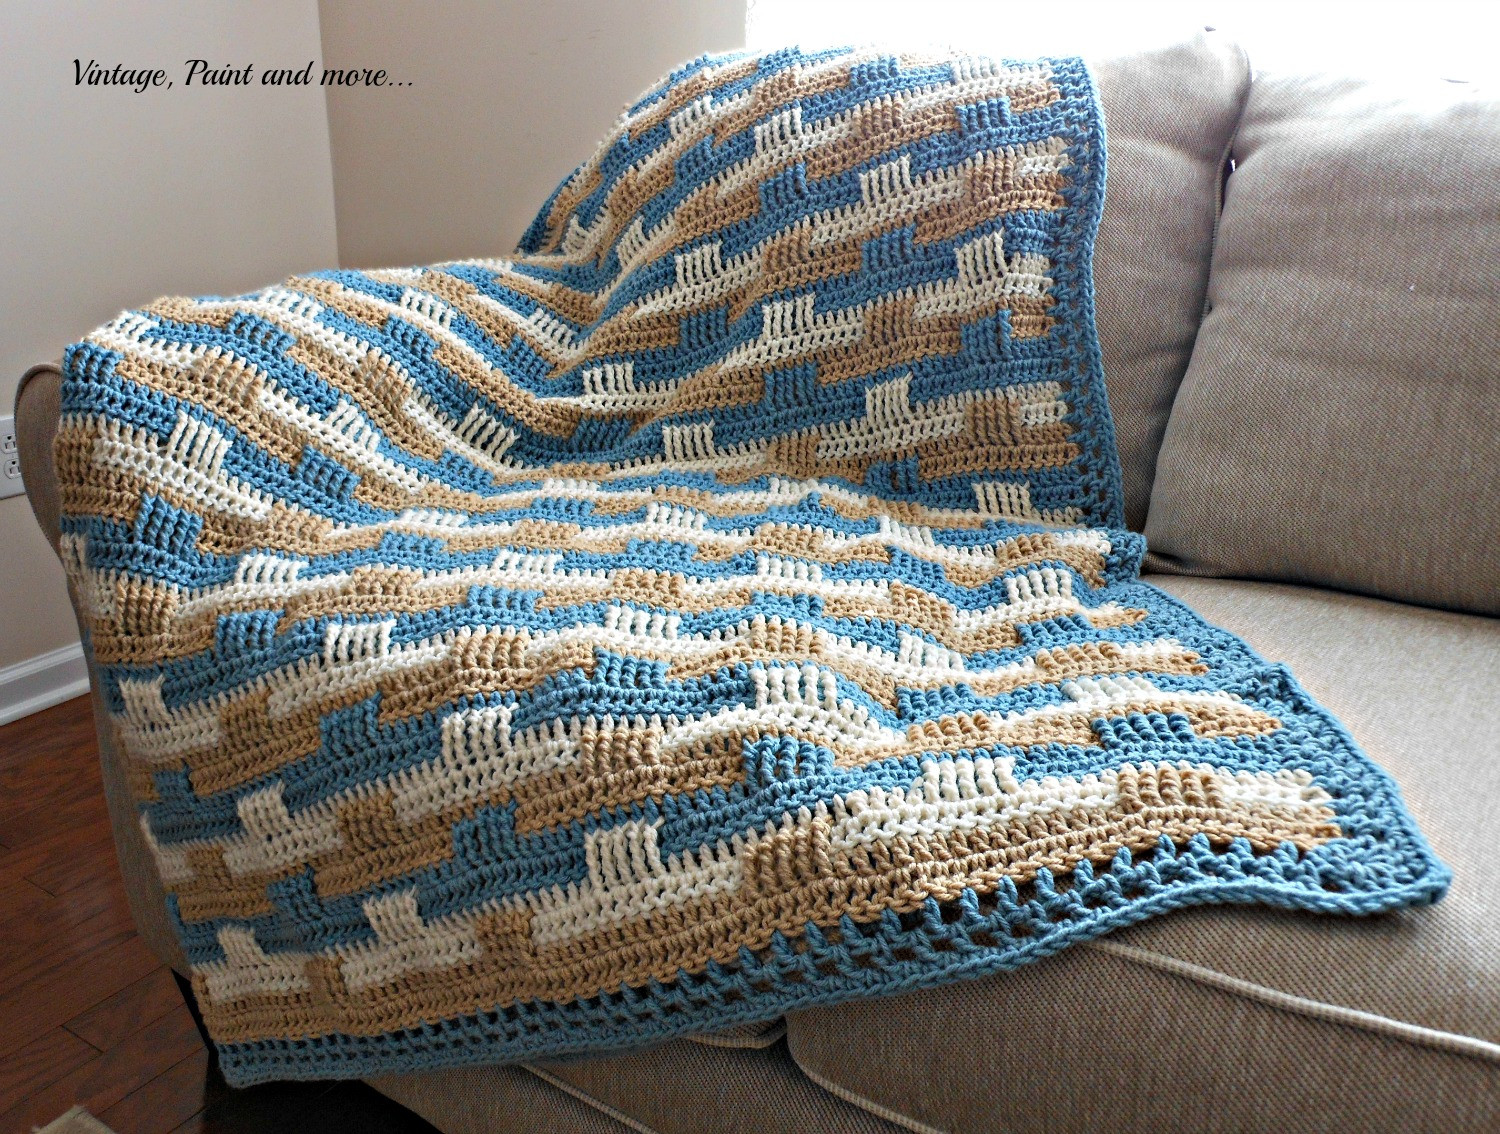 Beautiful Crochet Afghan and Stenciled Pillow Crochet Afghan Of Innovative 44 Ideas Crochet Afghan